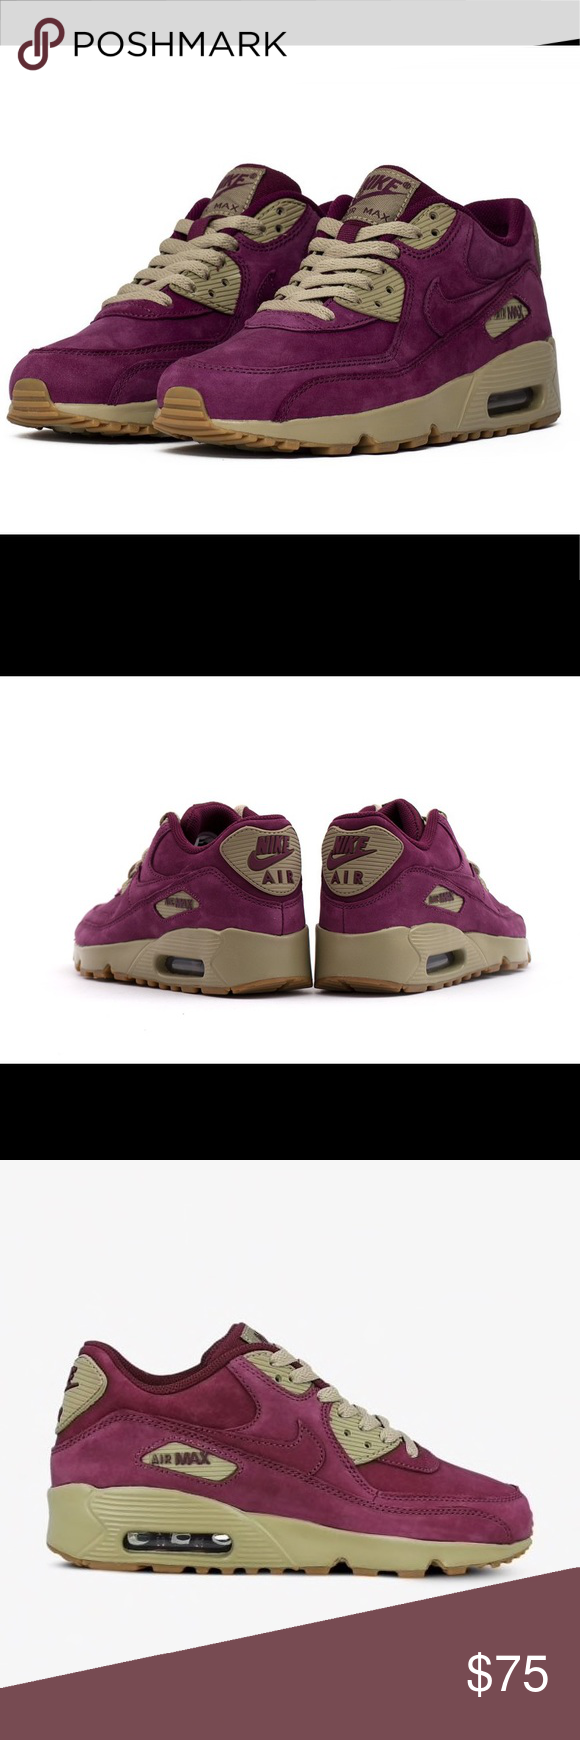 new Air Suede PRM Bordeaux Bamboo Max 90 Brand Winter Nike